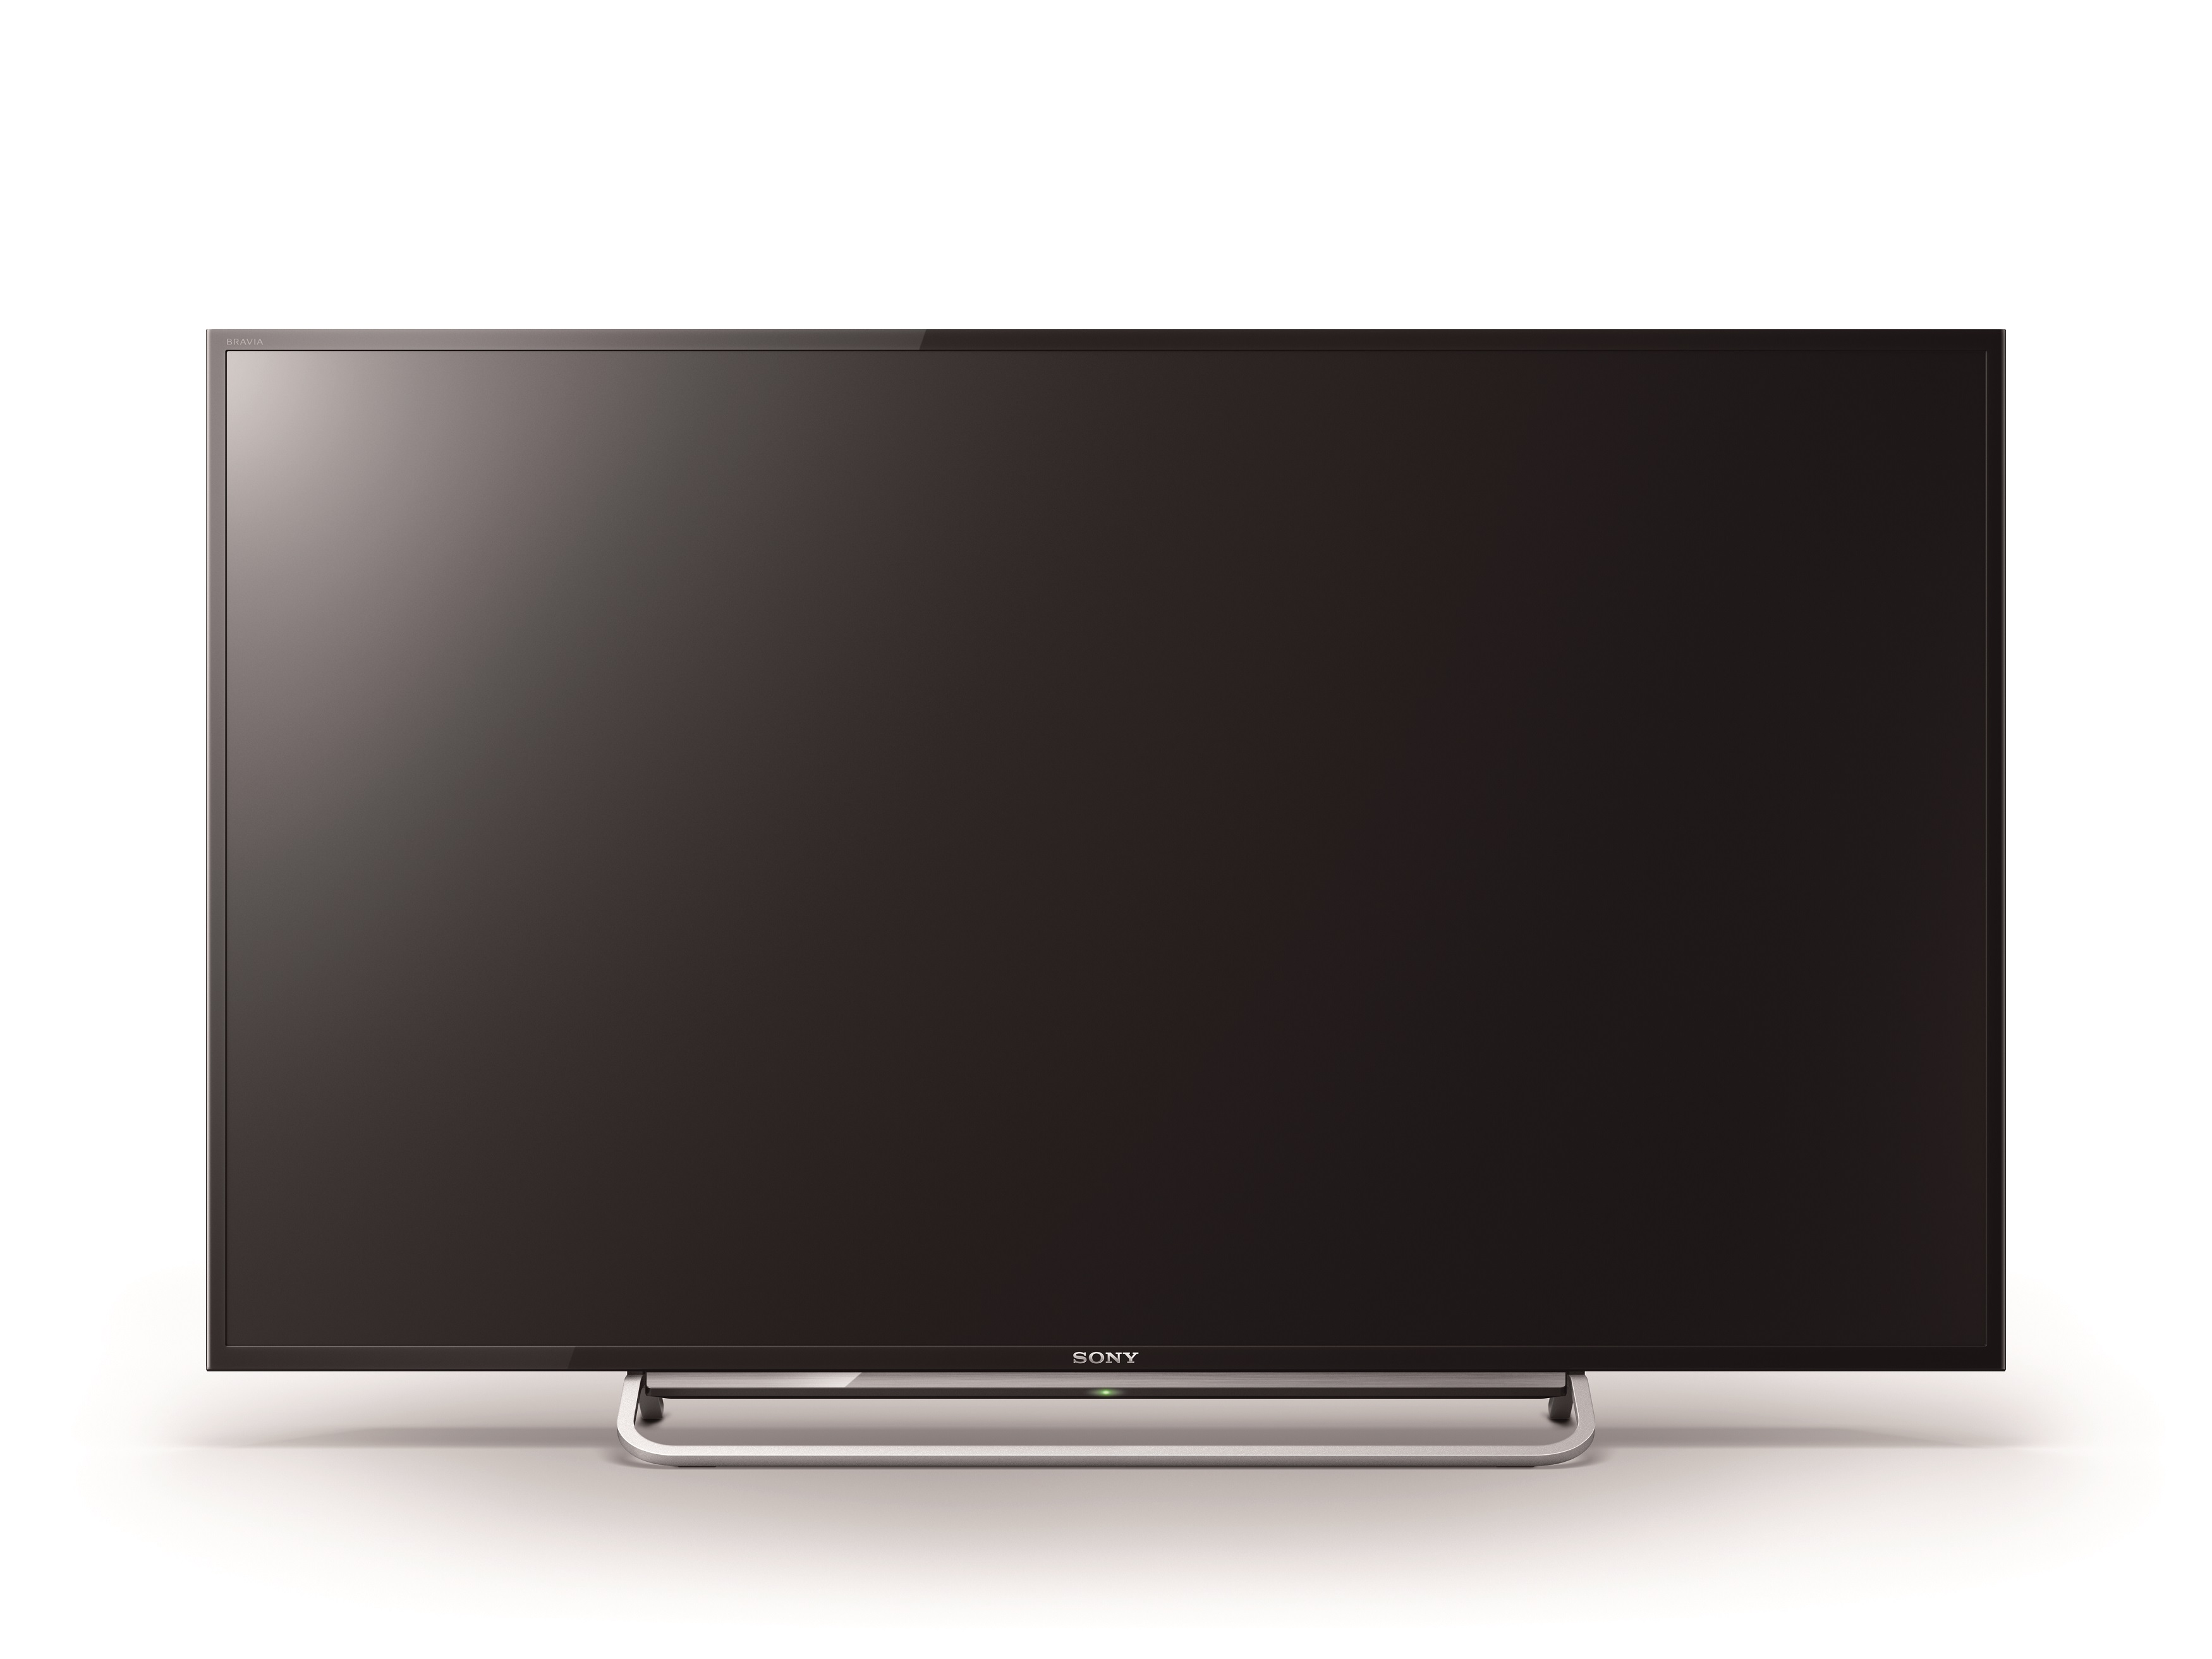 sony enriches entertainment experience with its new range of bravia tvs social pr